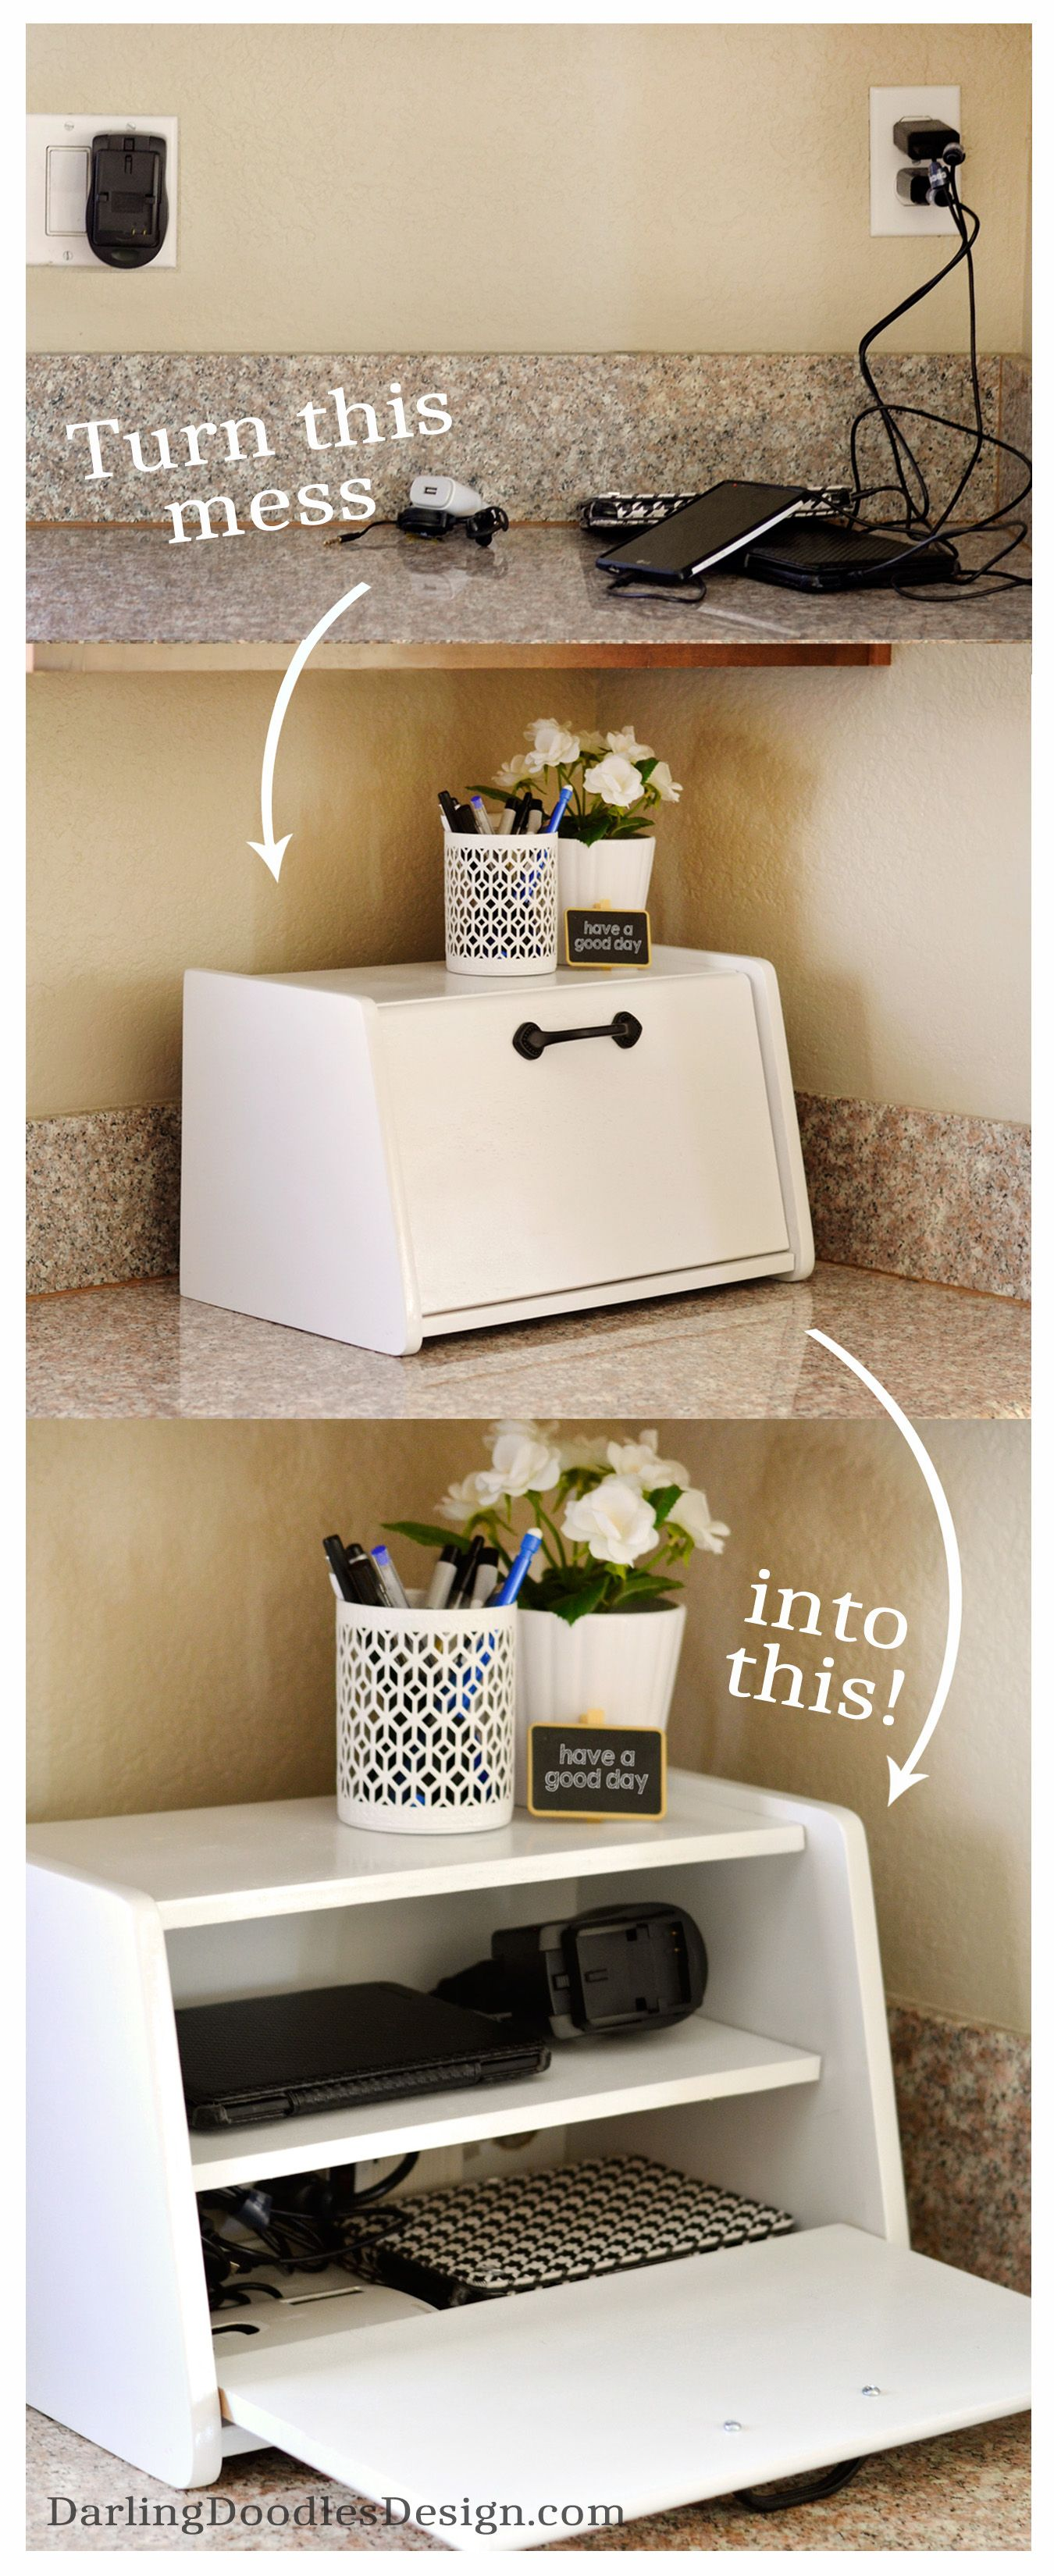 Diy Charging Station With An Old Bread Box Darling Doodles Home Office Organization Home Organization Organization Bedroom